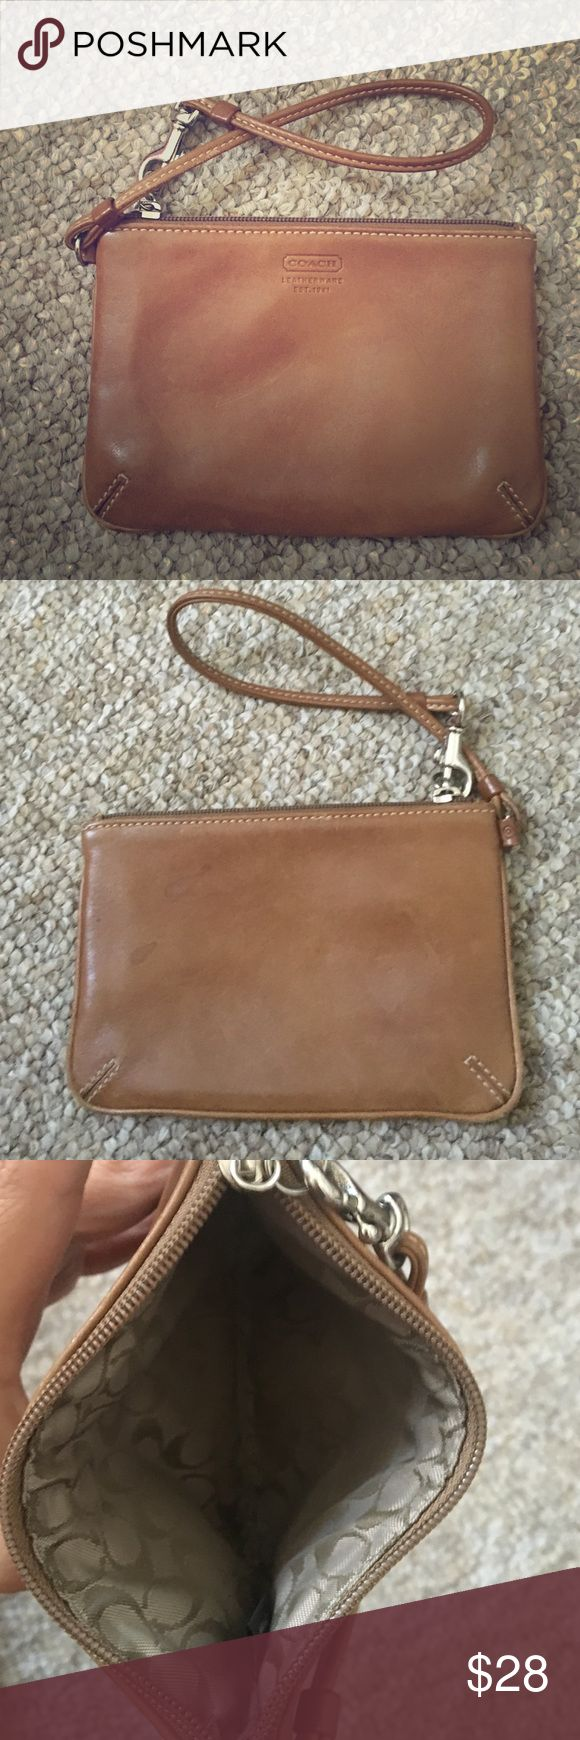 Coach tan leather women's wristlet Soft tan leather, signature c inside liner Coach Bags Clutches & Wristlets